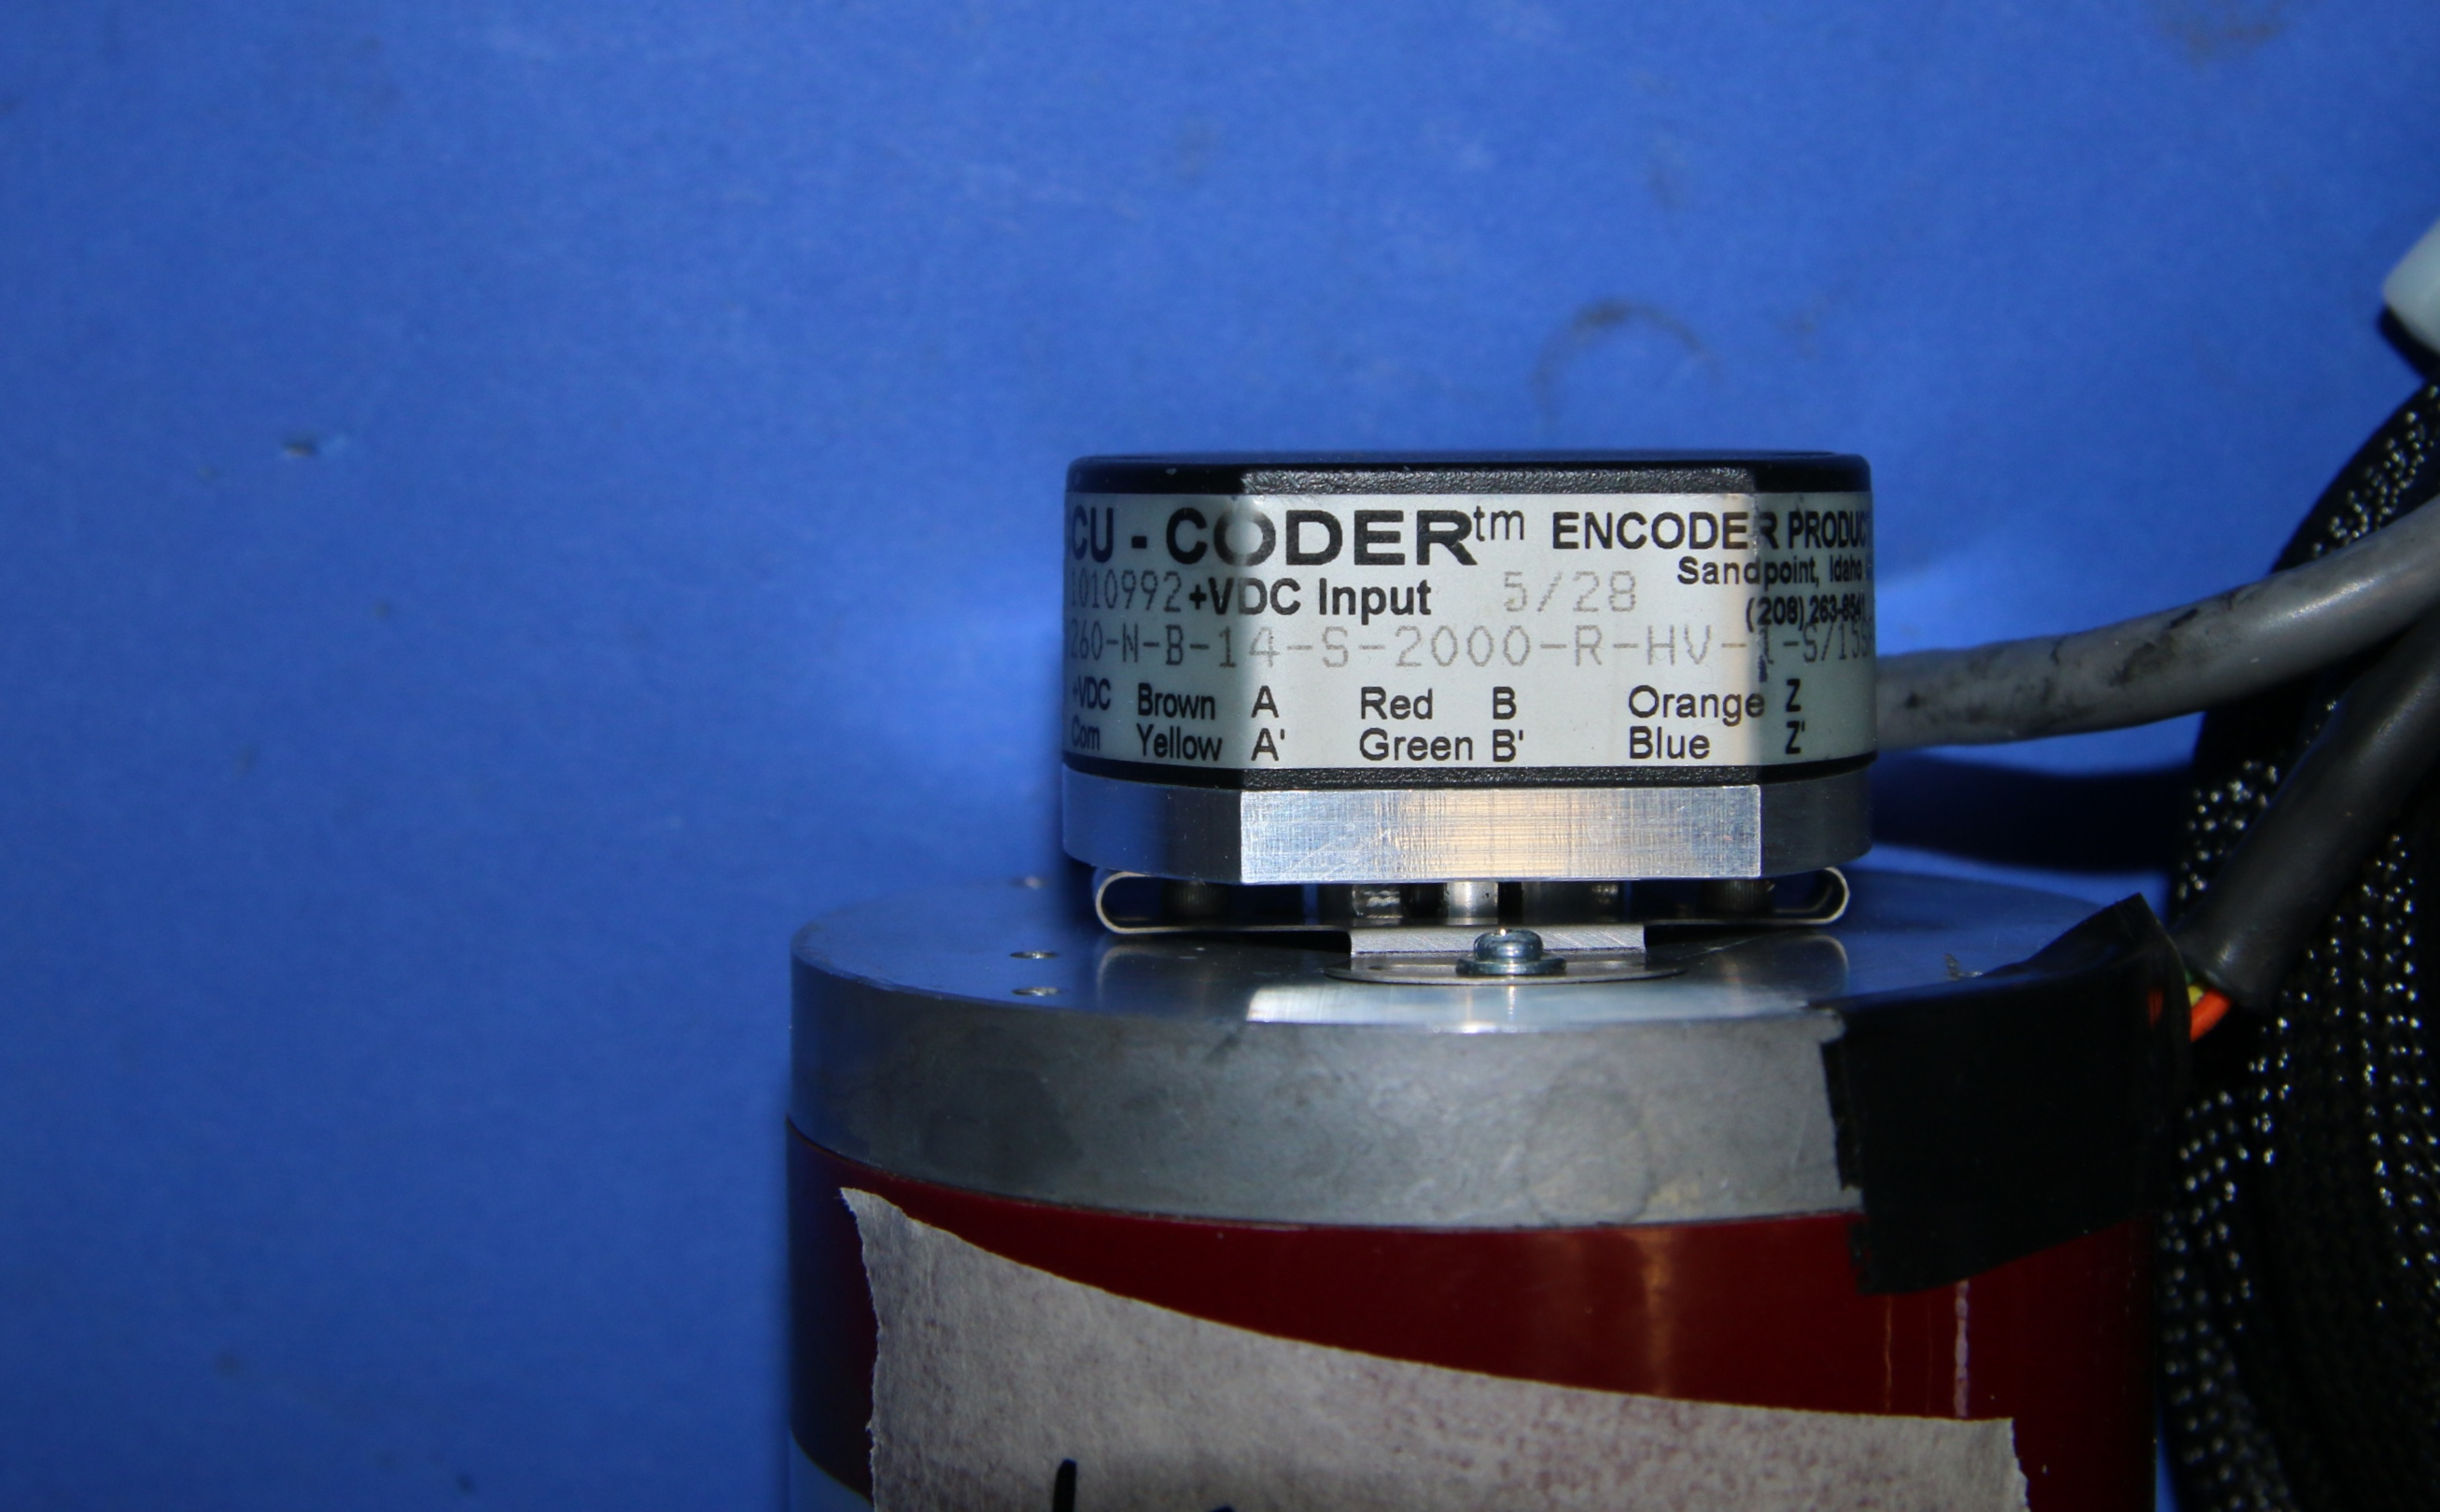 (3) Used Kollmorgen Accu-Coder 260-N-B-14-S-2000-R-HV-1-S/15.00-SF-4N Encoders 1